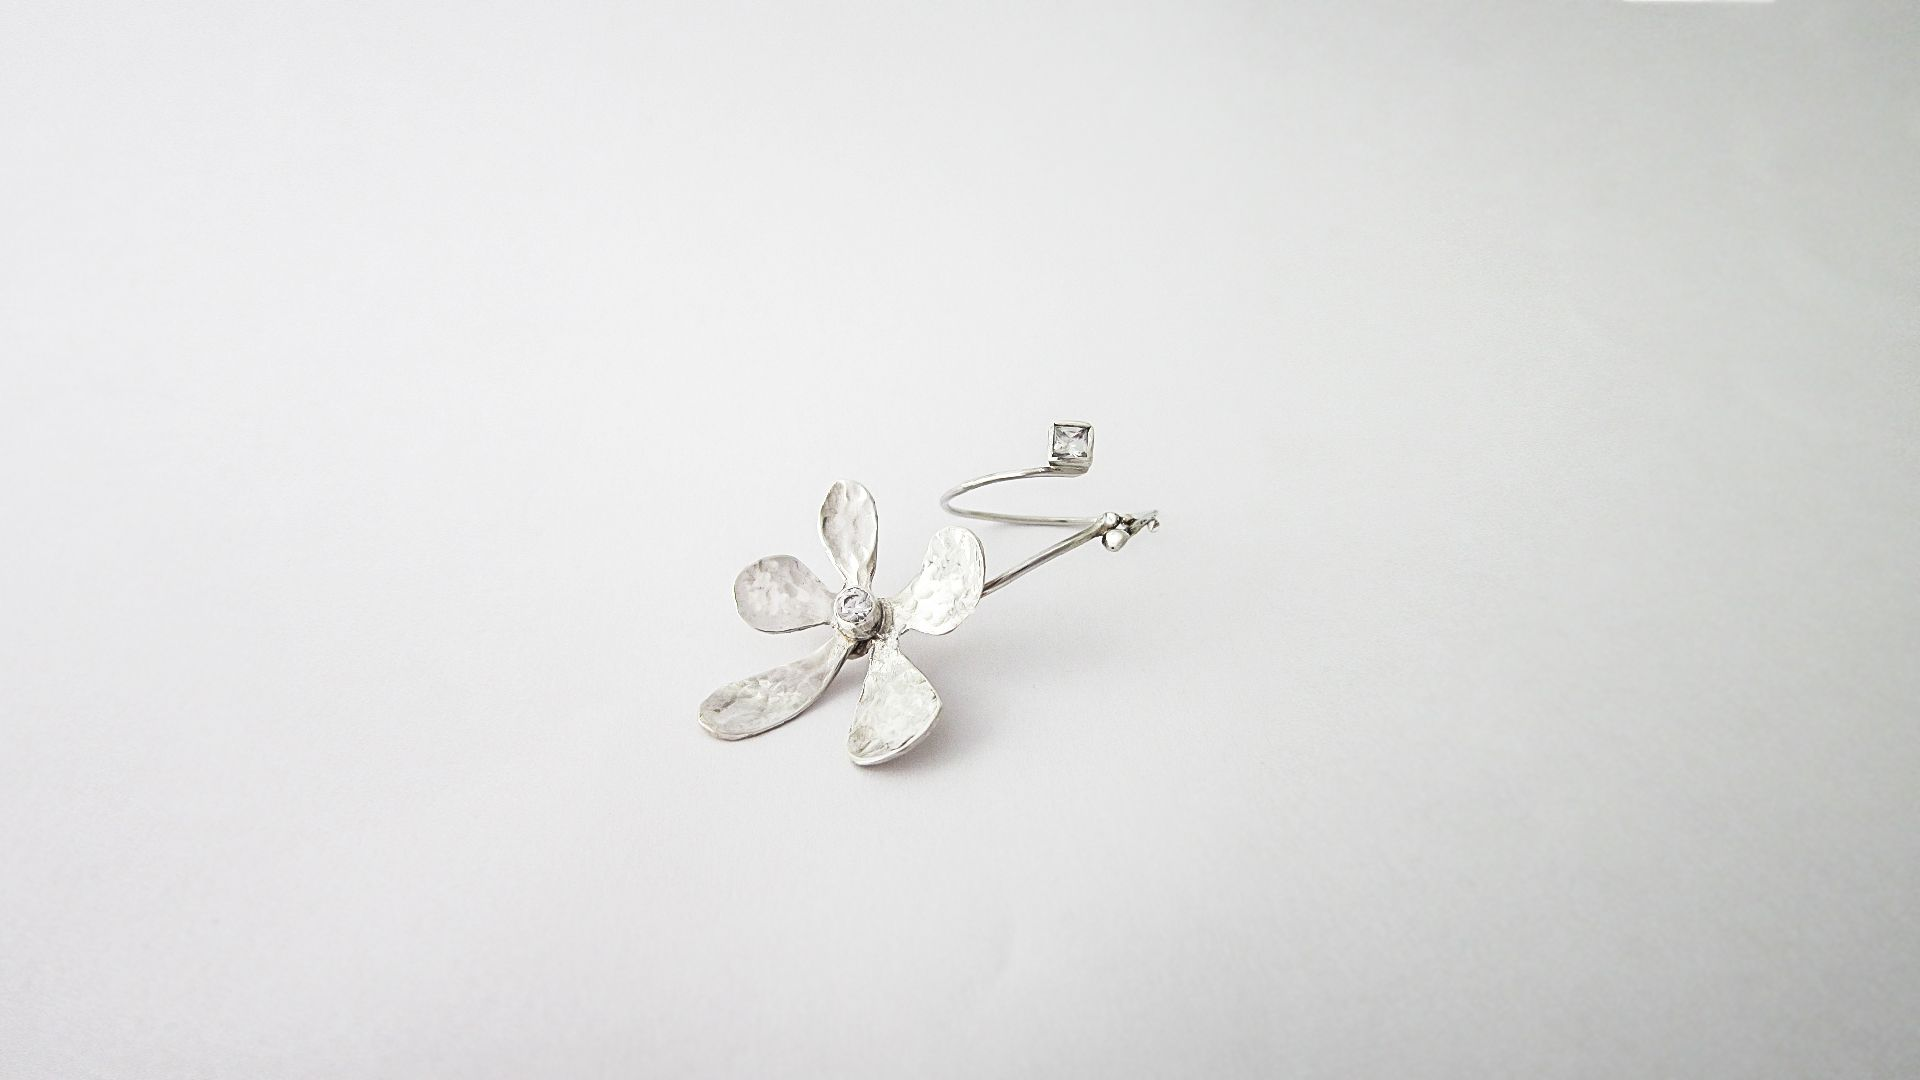 Sparkling cherry flower- Ikebana, Elena Crisan's jewellery collection; the ring is made of silver and two zicorn stones.